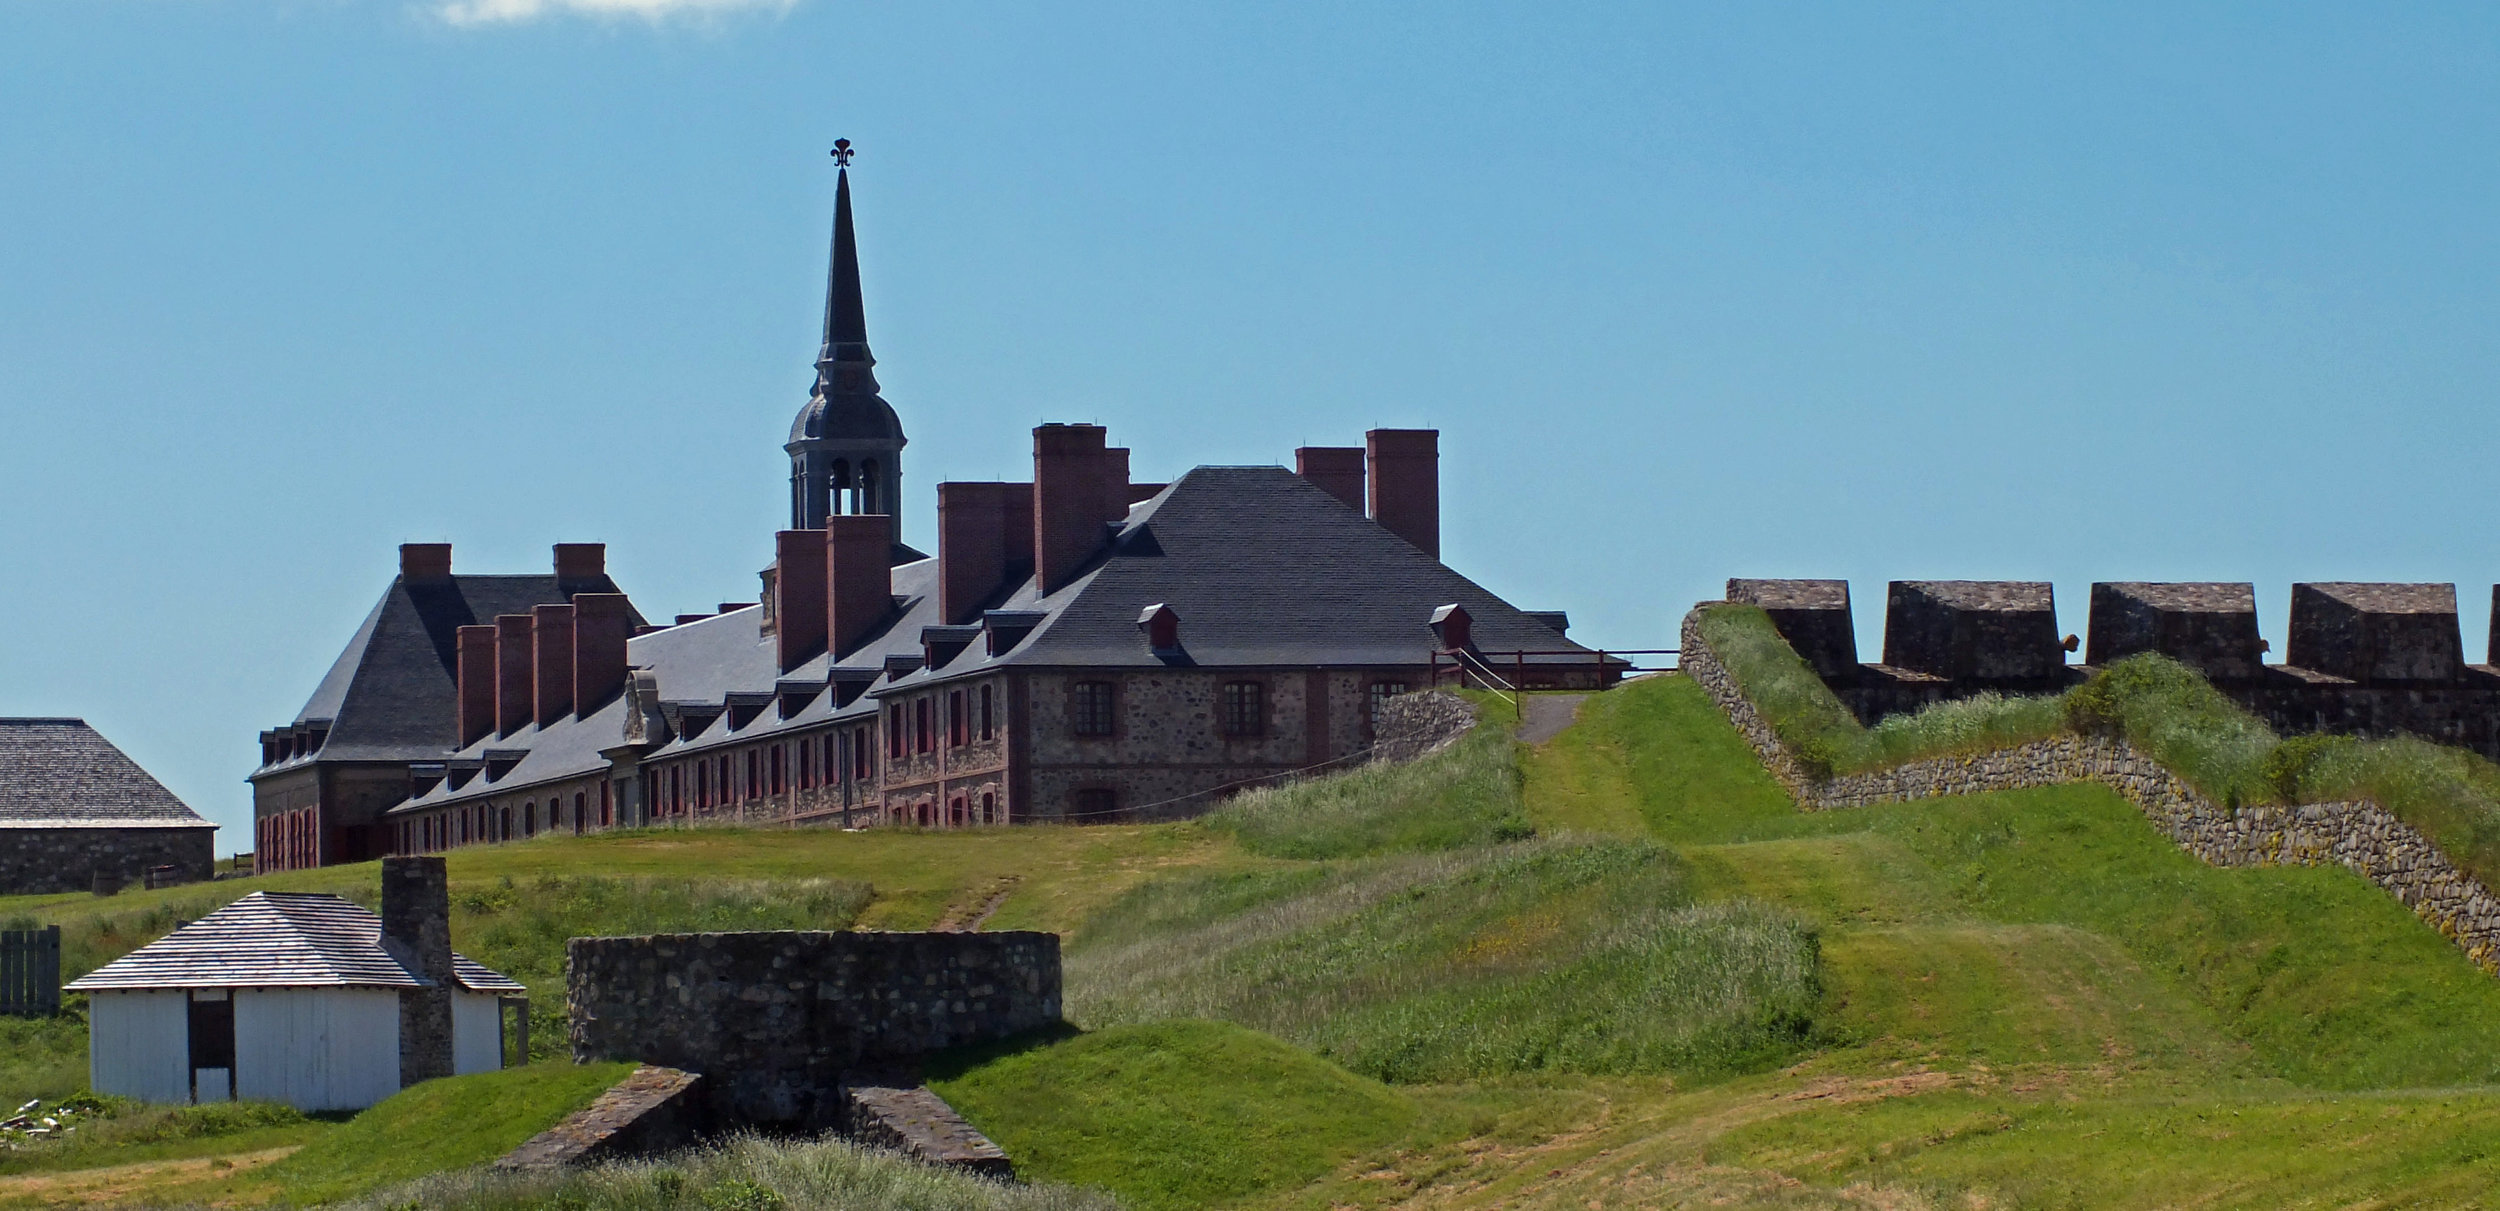 The Fortress of Louisbourg. (Lukester878/Wikimedia Commons under  CC-BY-SA 3.0 )